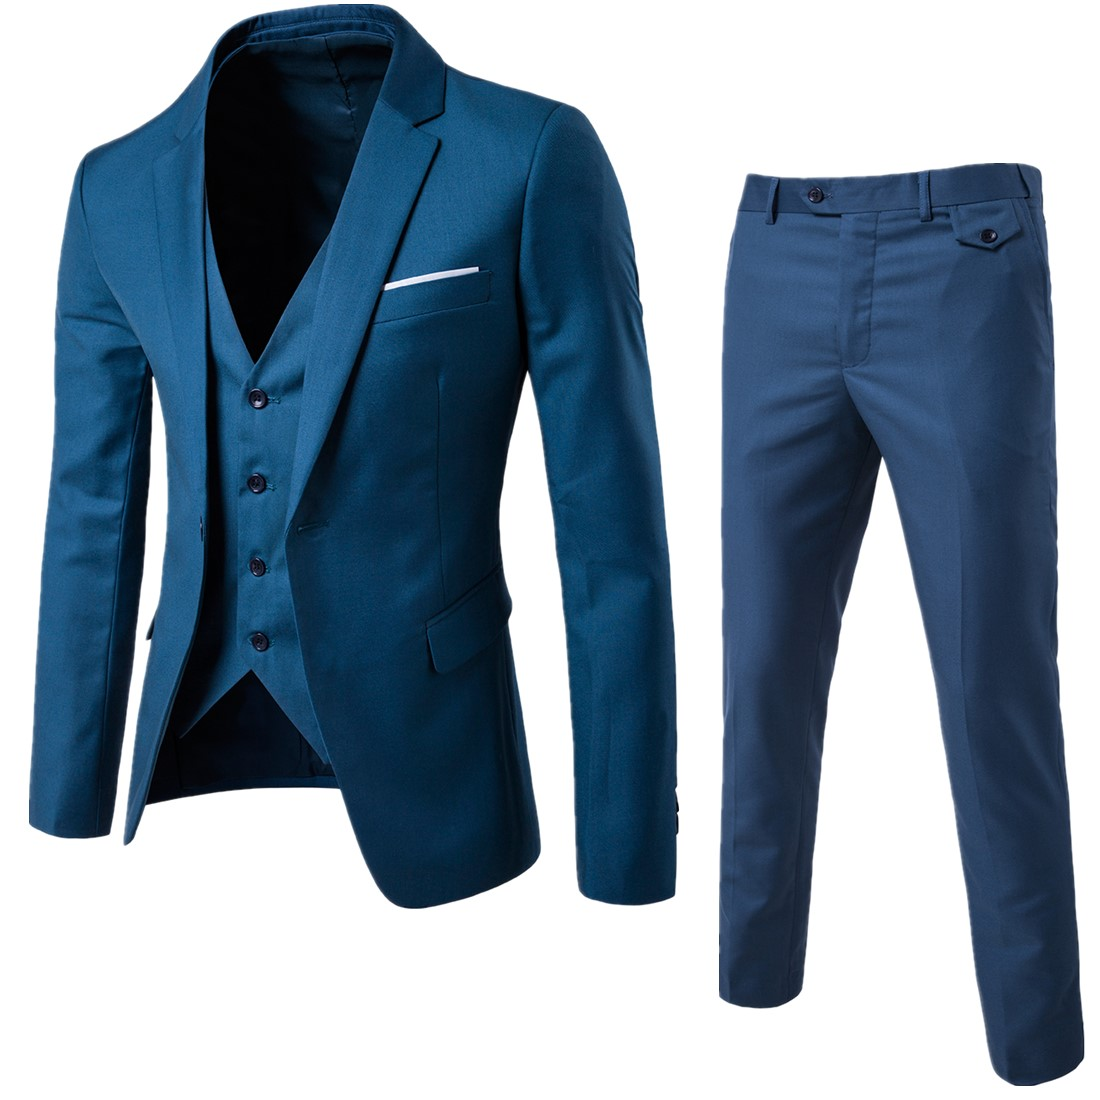 Quality mens clothing online